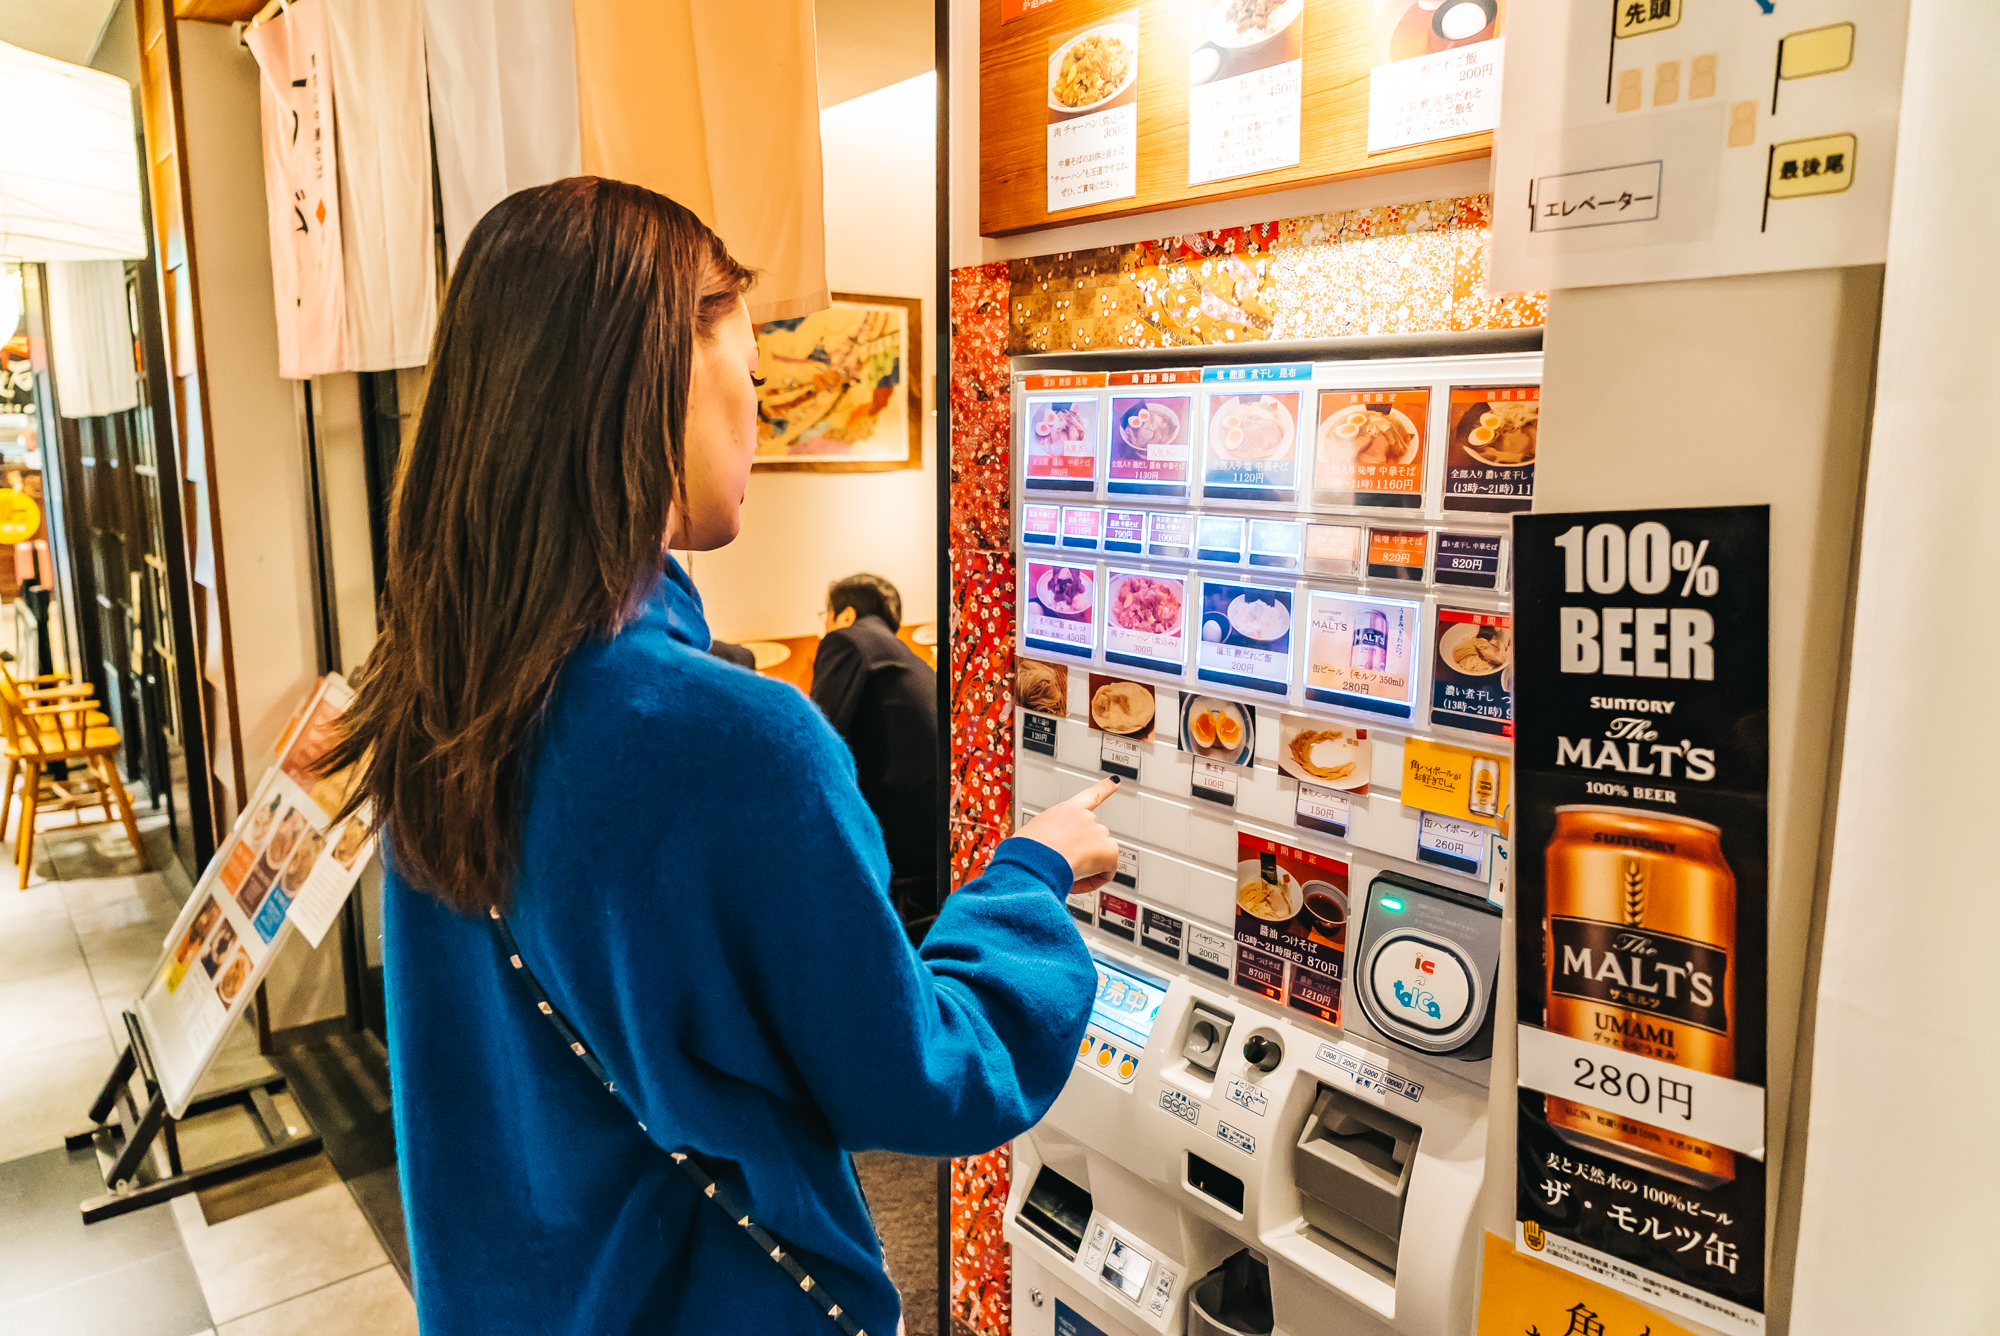 Ordering our ramen through the vending machine first